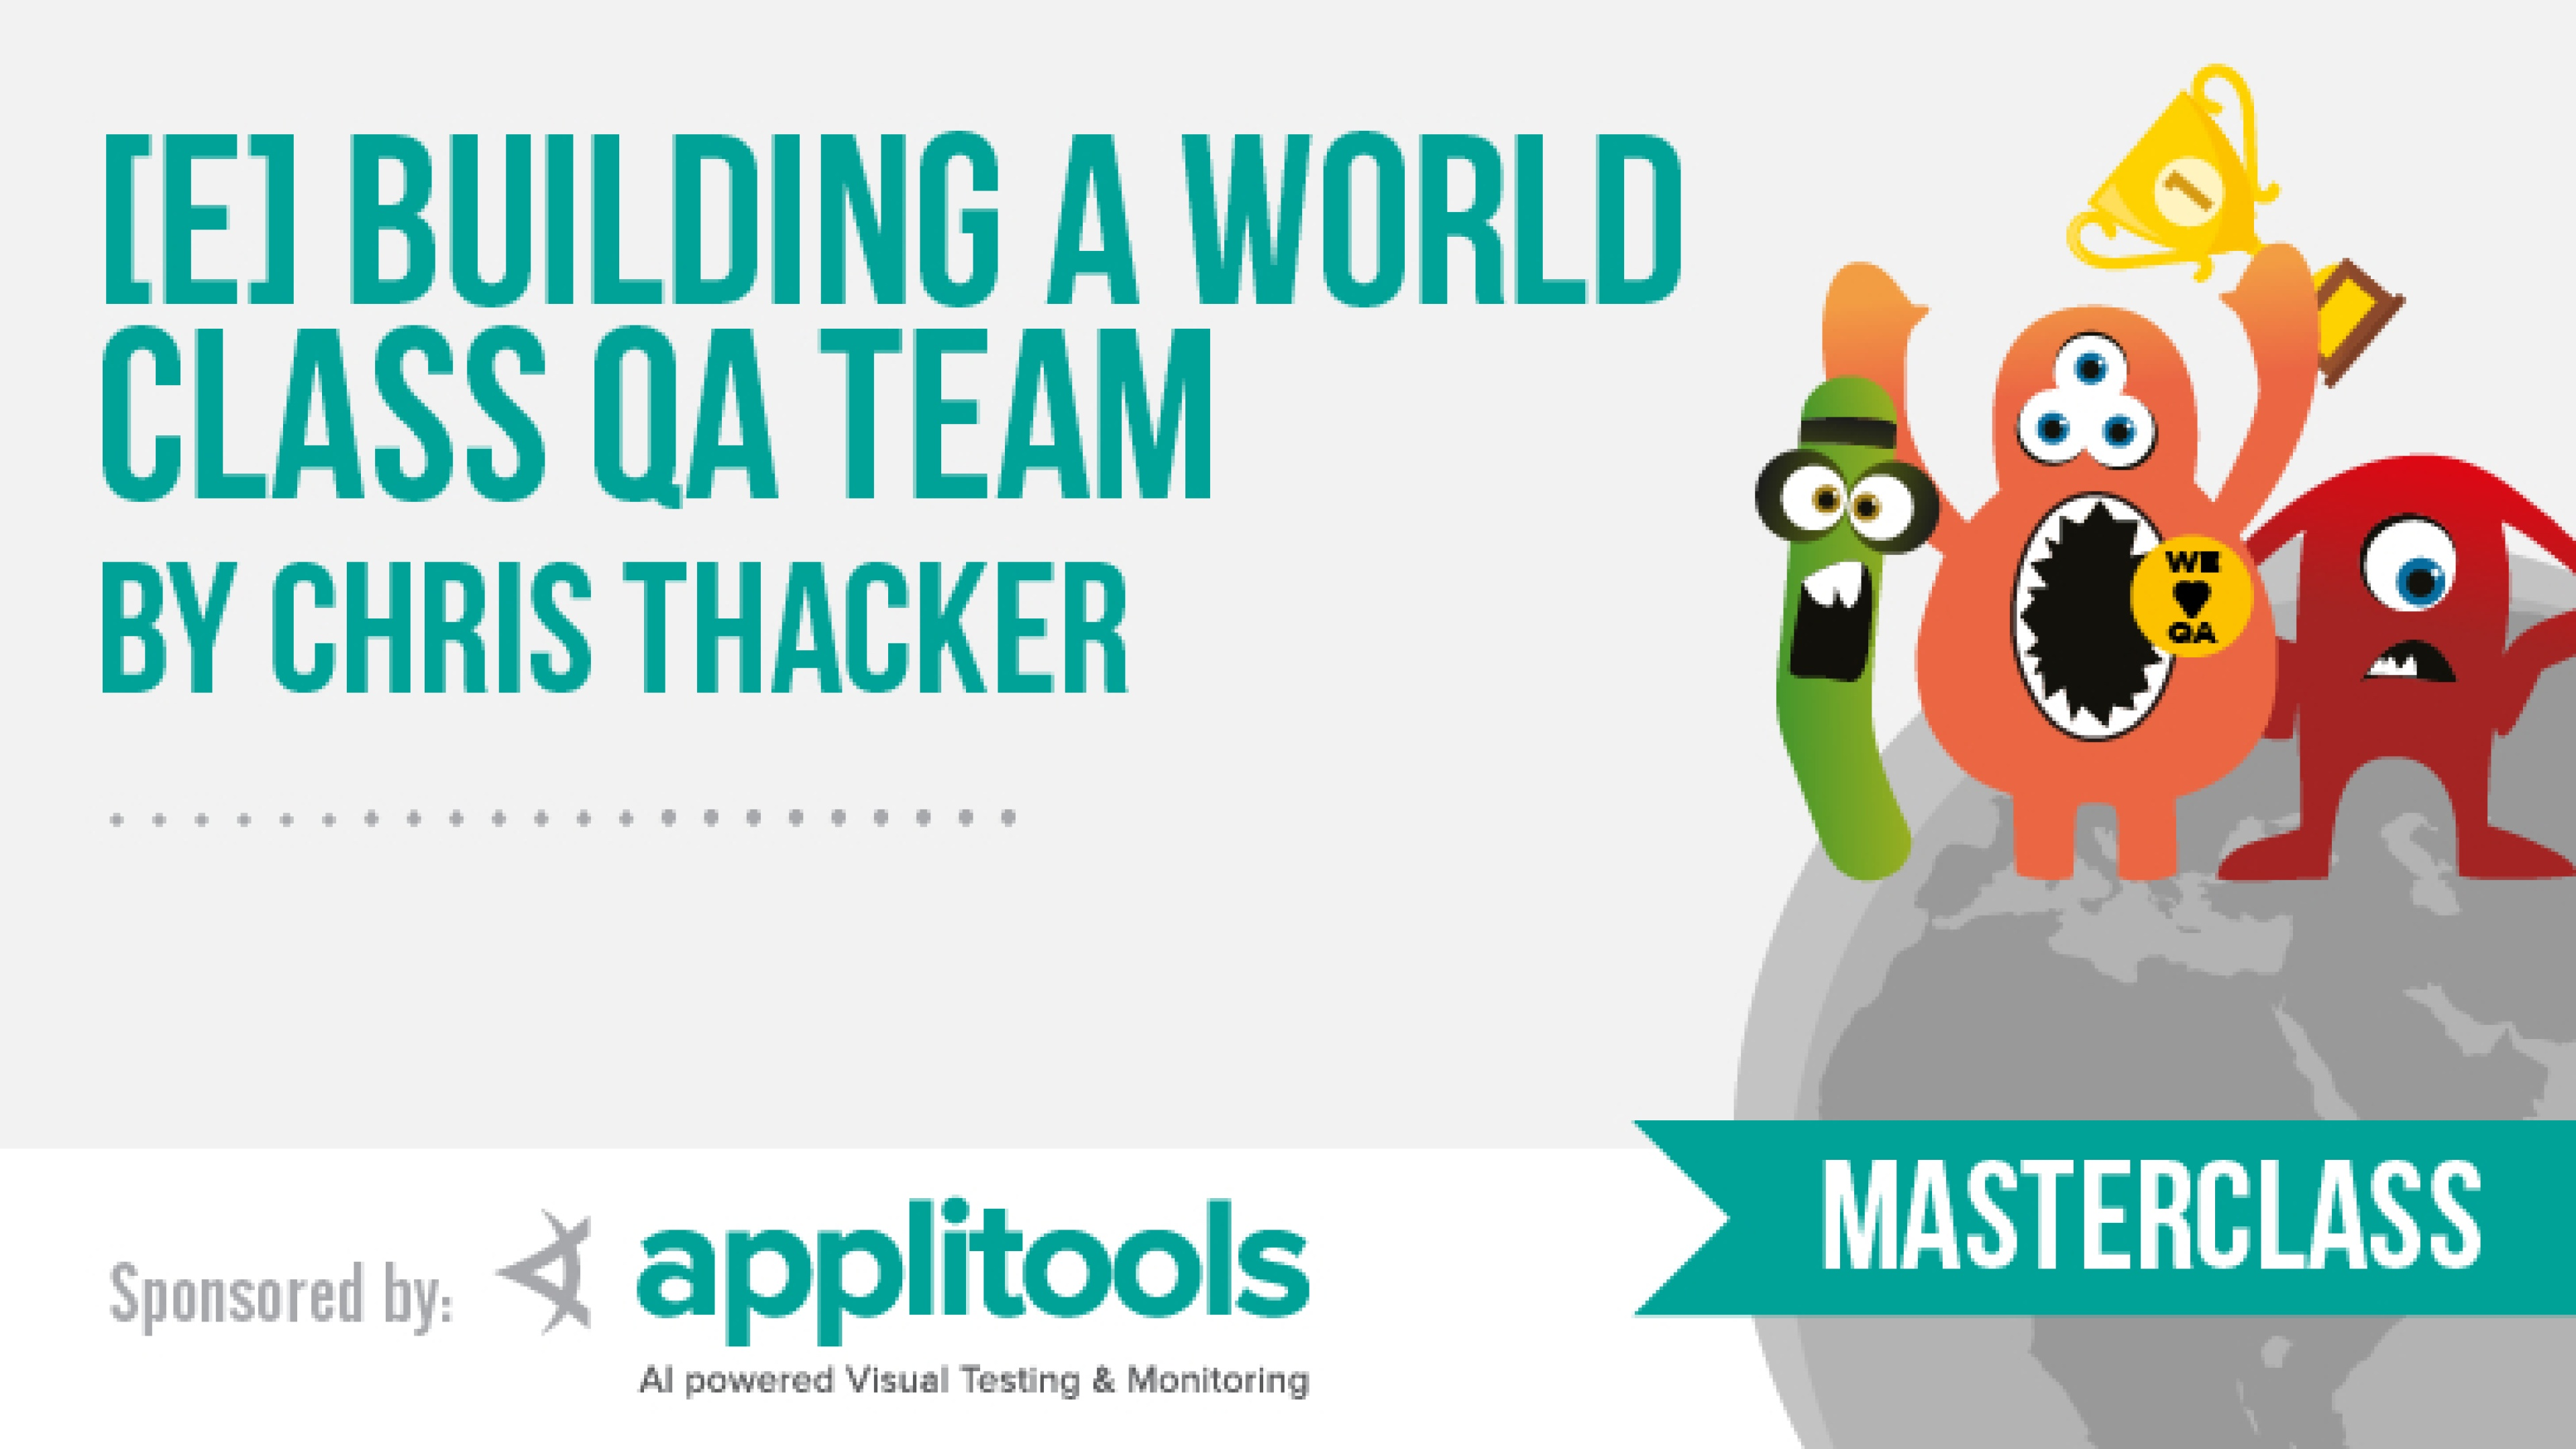 [E] Building a World Class QA team with Chris Thacker